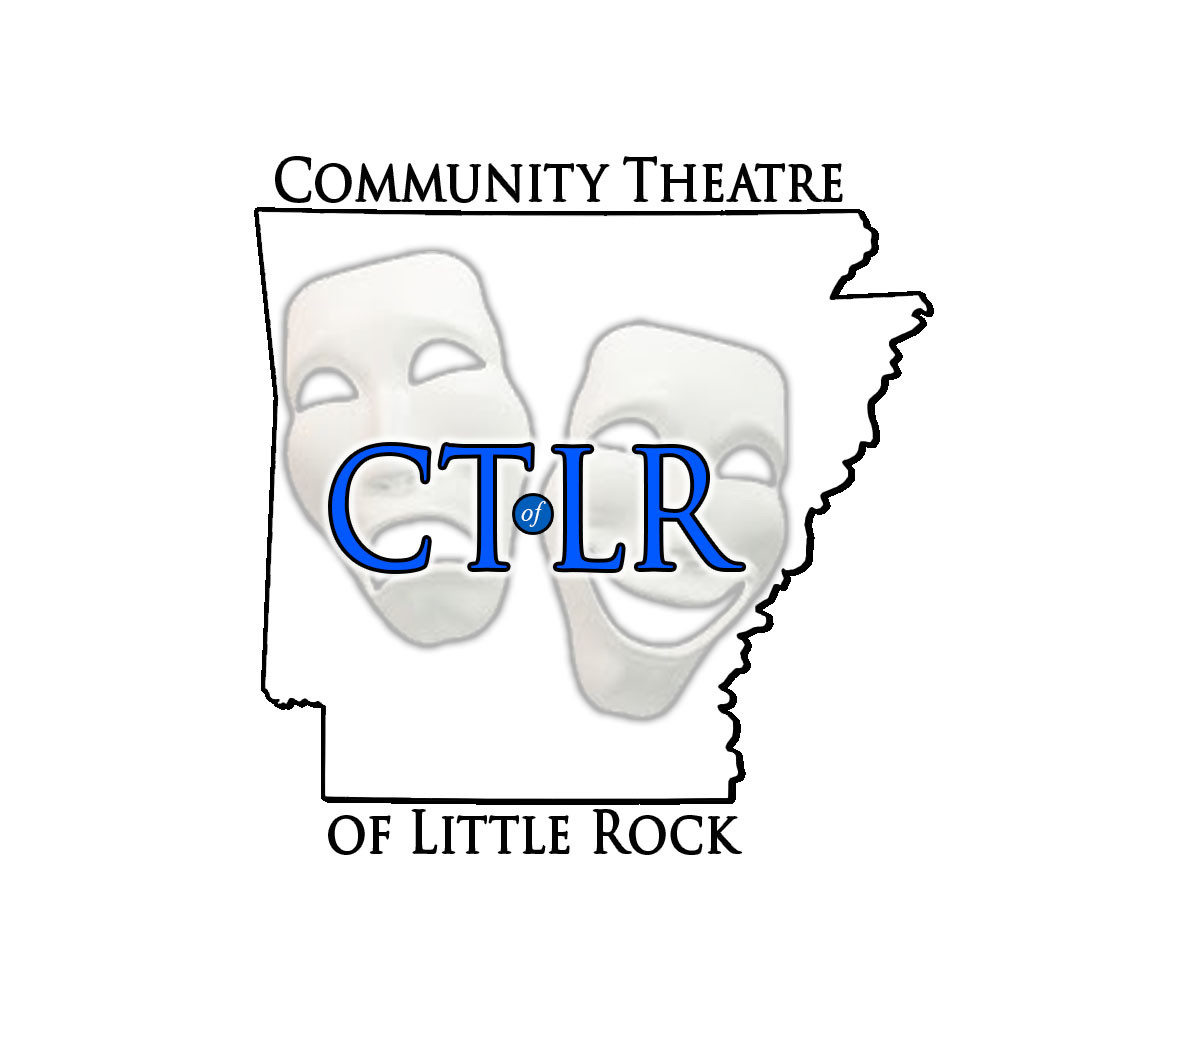 (c) Ctlr-act.org